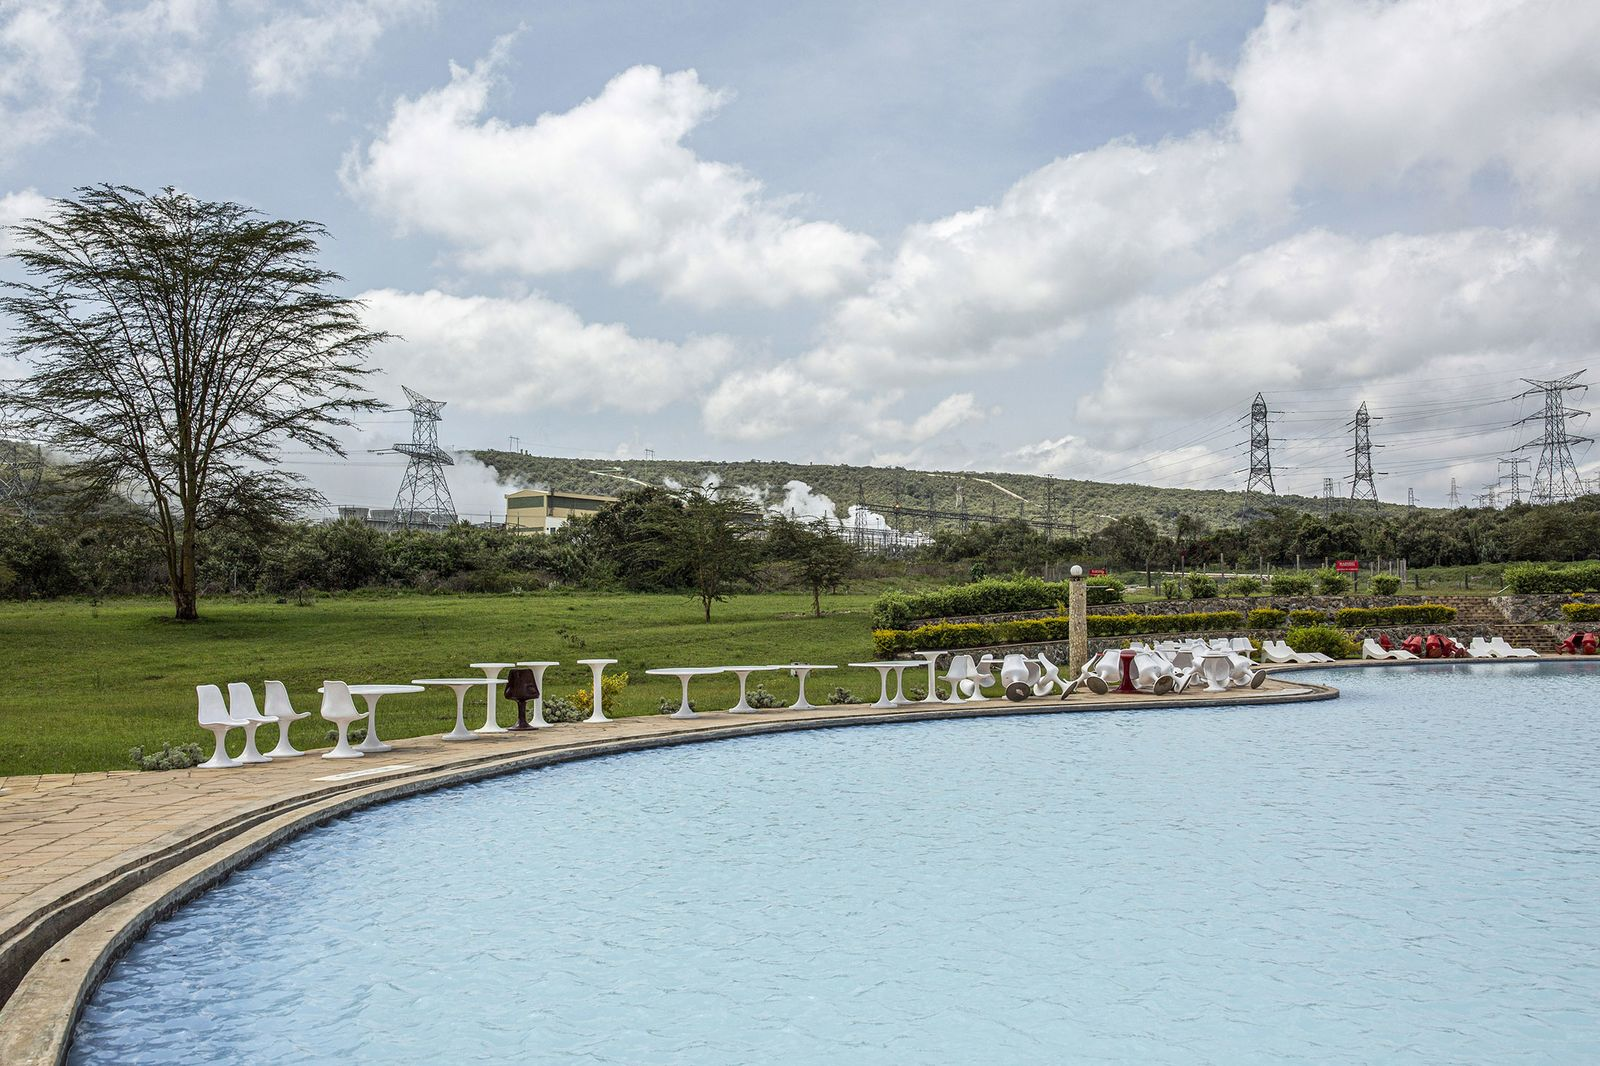 relates to The World's No. 1 in Geothermal Electricity, Kenya Aims to Export Its Know-How